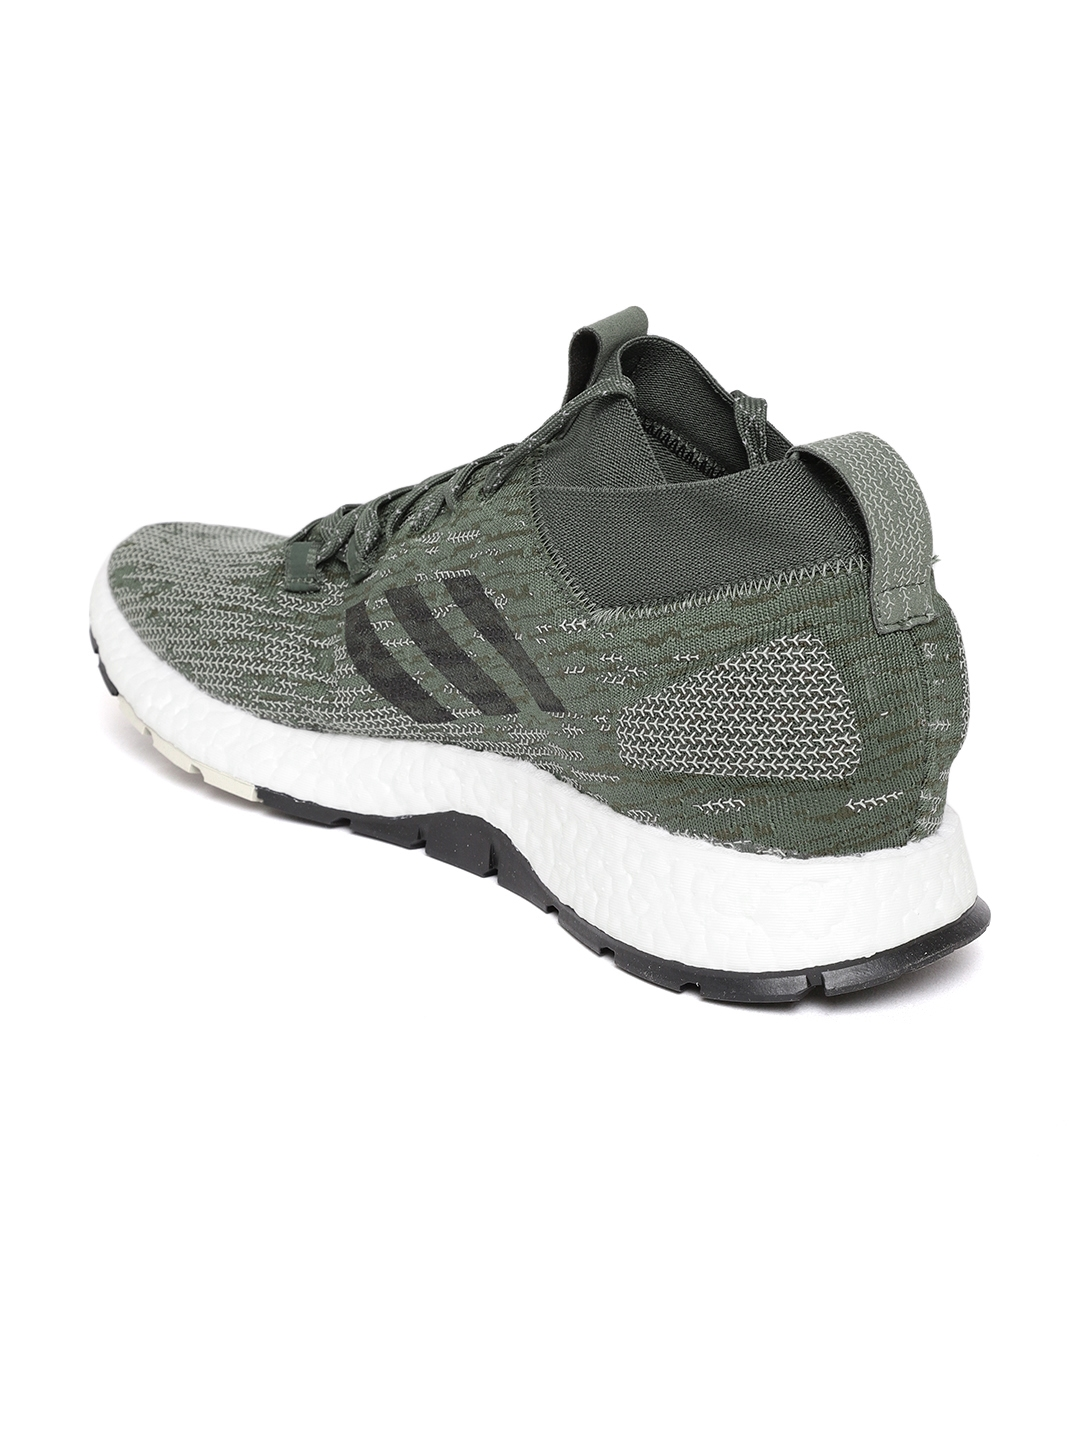 dbad4d6f2 ADIDAS Men Olive Green   Off-White Pureboost RBL Woven Design Running Shoes